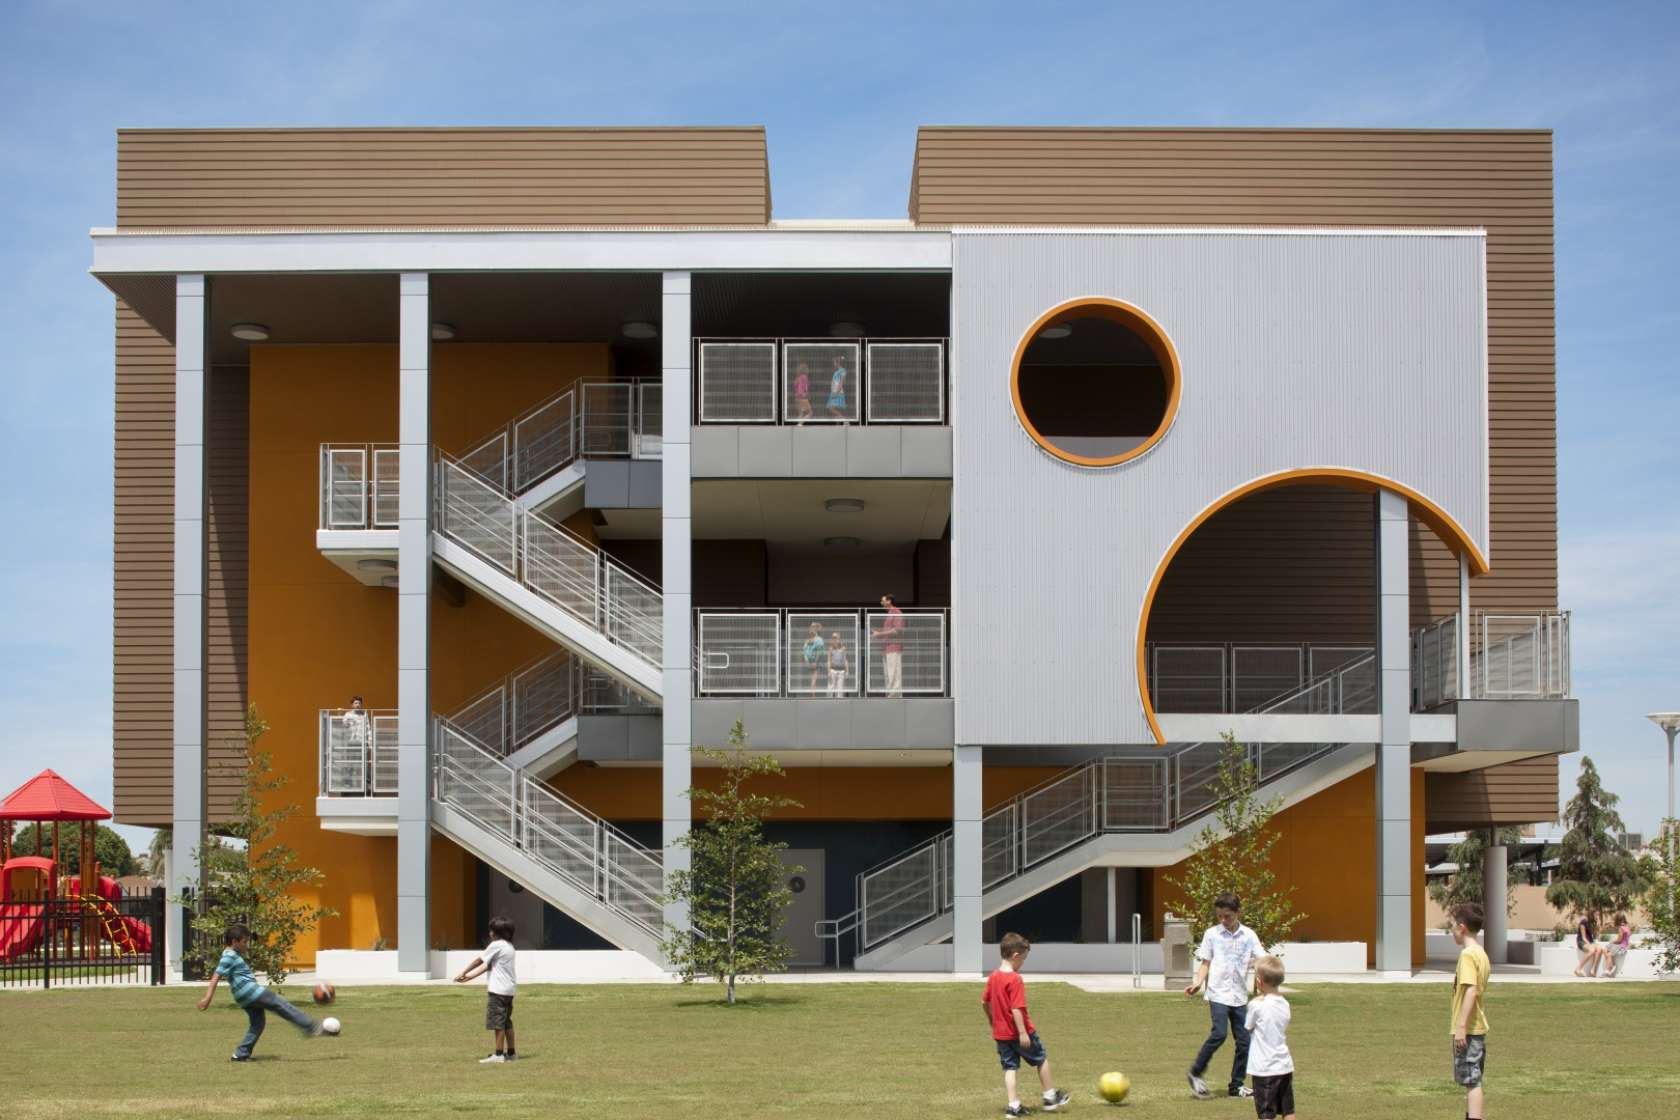 South region elementary school 9 architizer for Exterior design courses